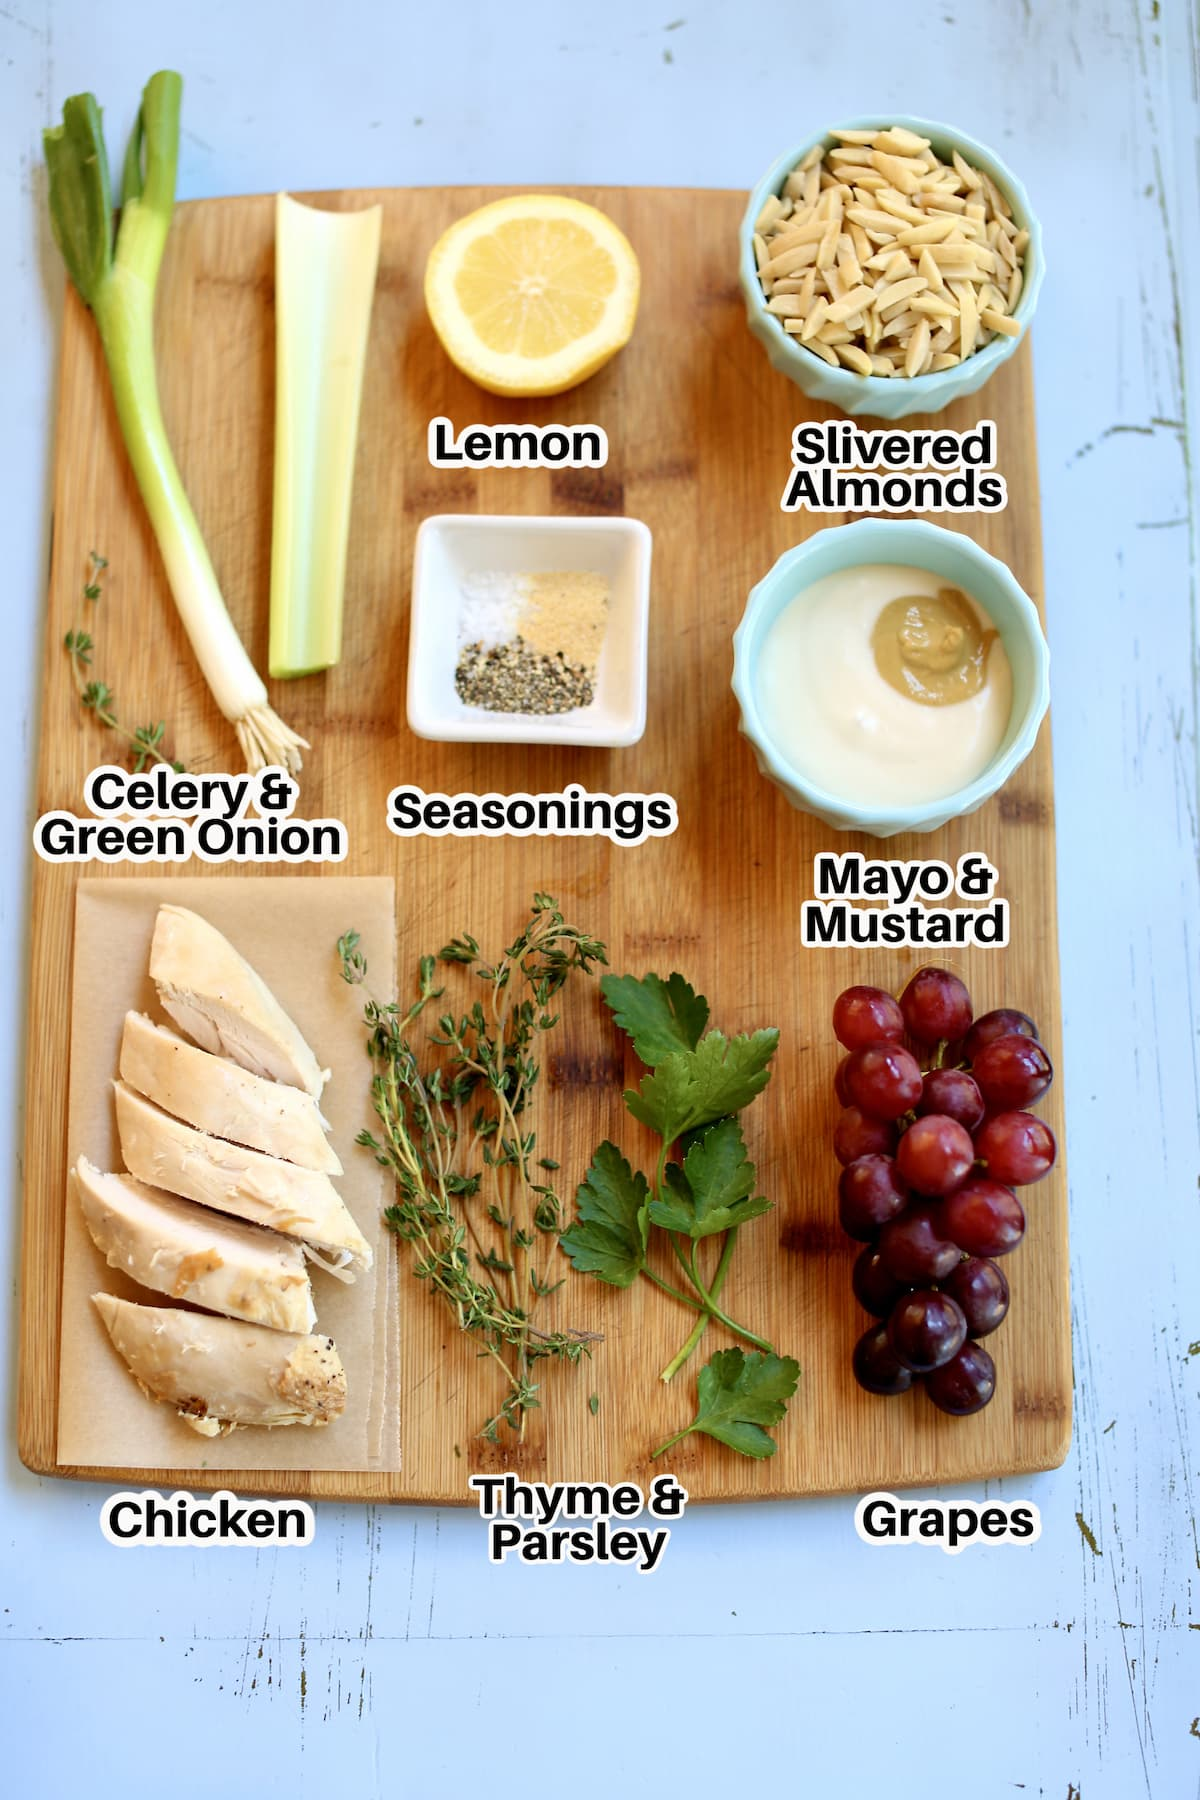 a cutting board of ingredients for chicken salad, rotisserie chicken, fresh herbs, grapes, mayo/mustard, seasonings, celery, lemon, slivered almonds.